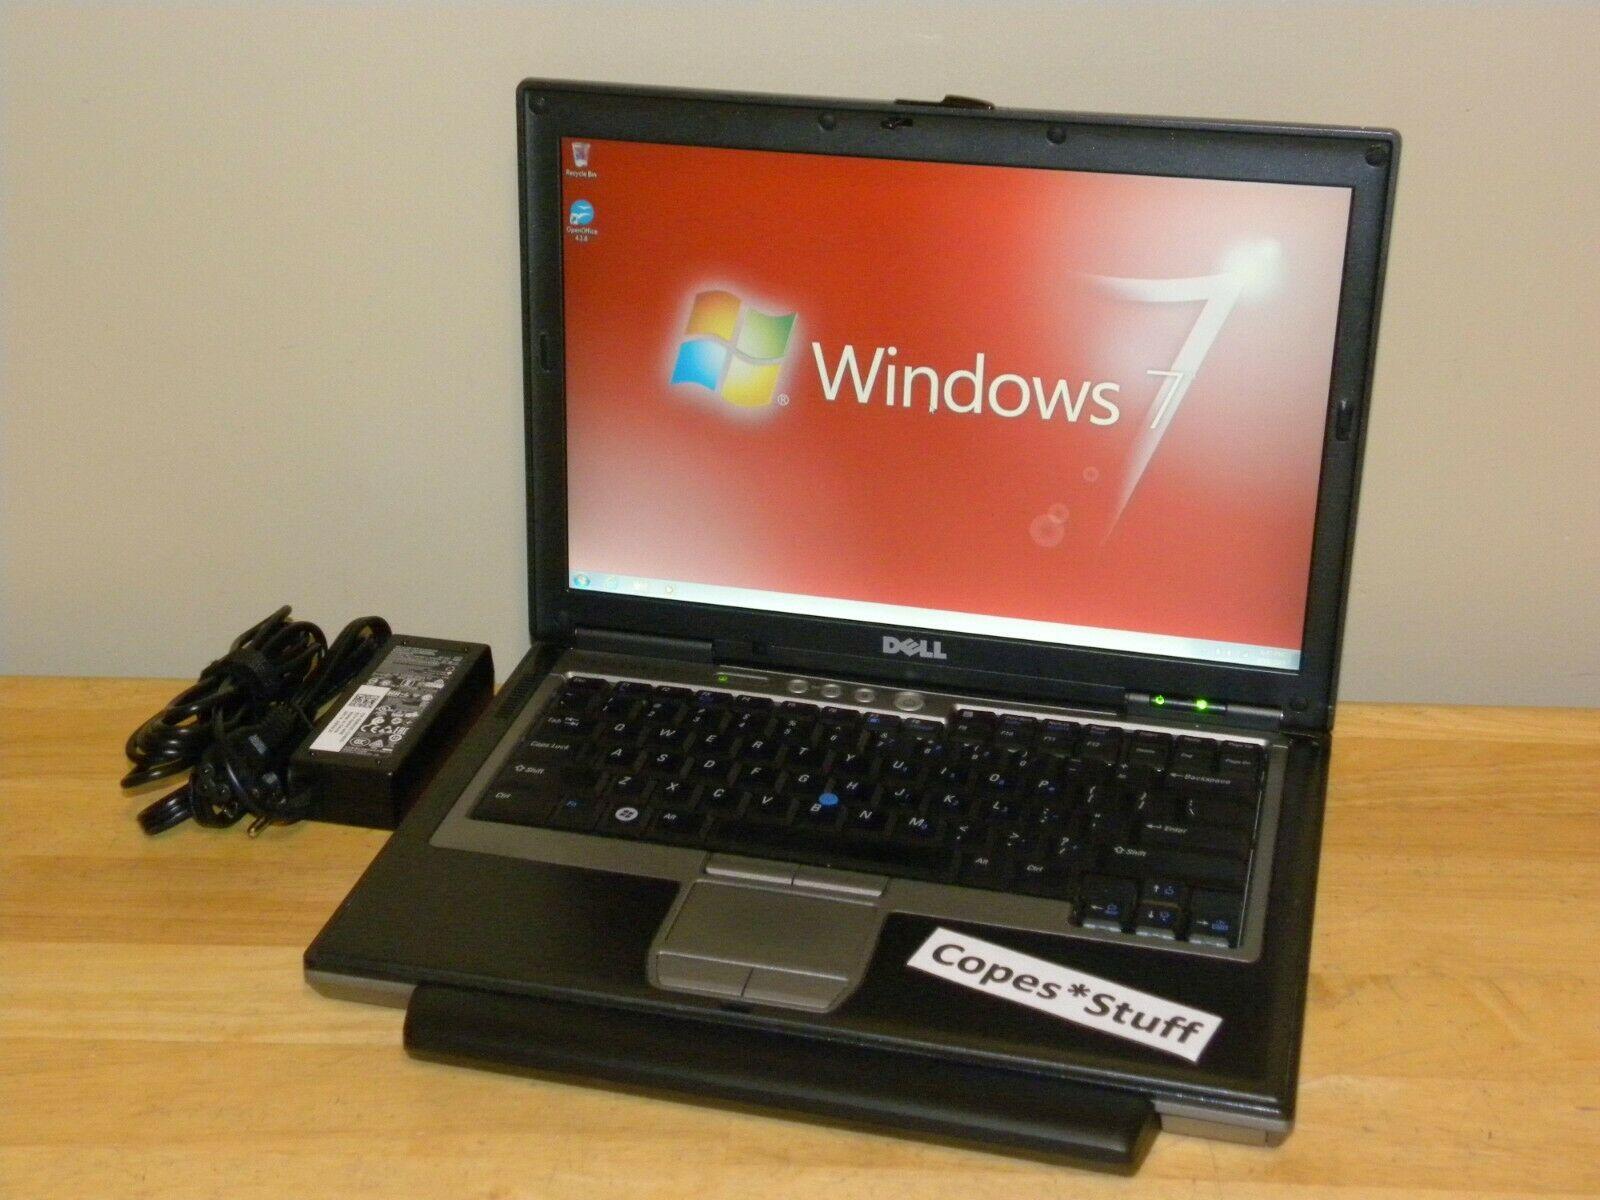 Laptop Windows - Dell Latitude D630 Core 2 Duo 160GB 4GB Windows 7 ~ NEW 9-Cell Extended Battery